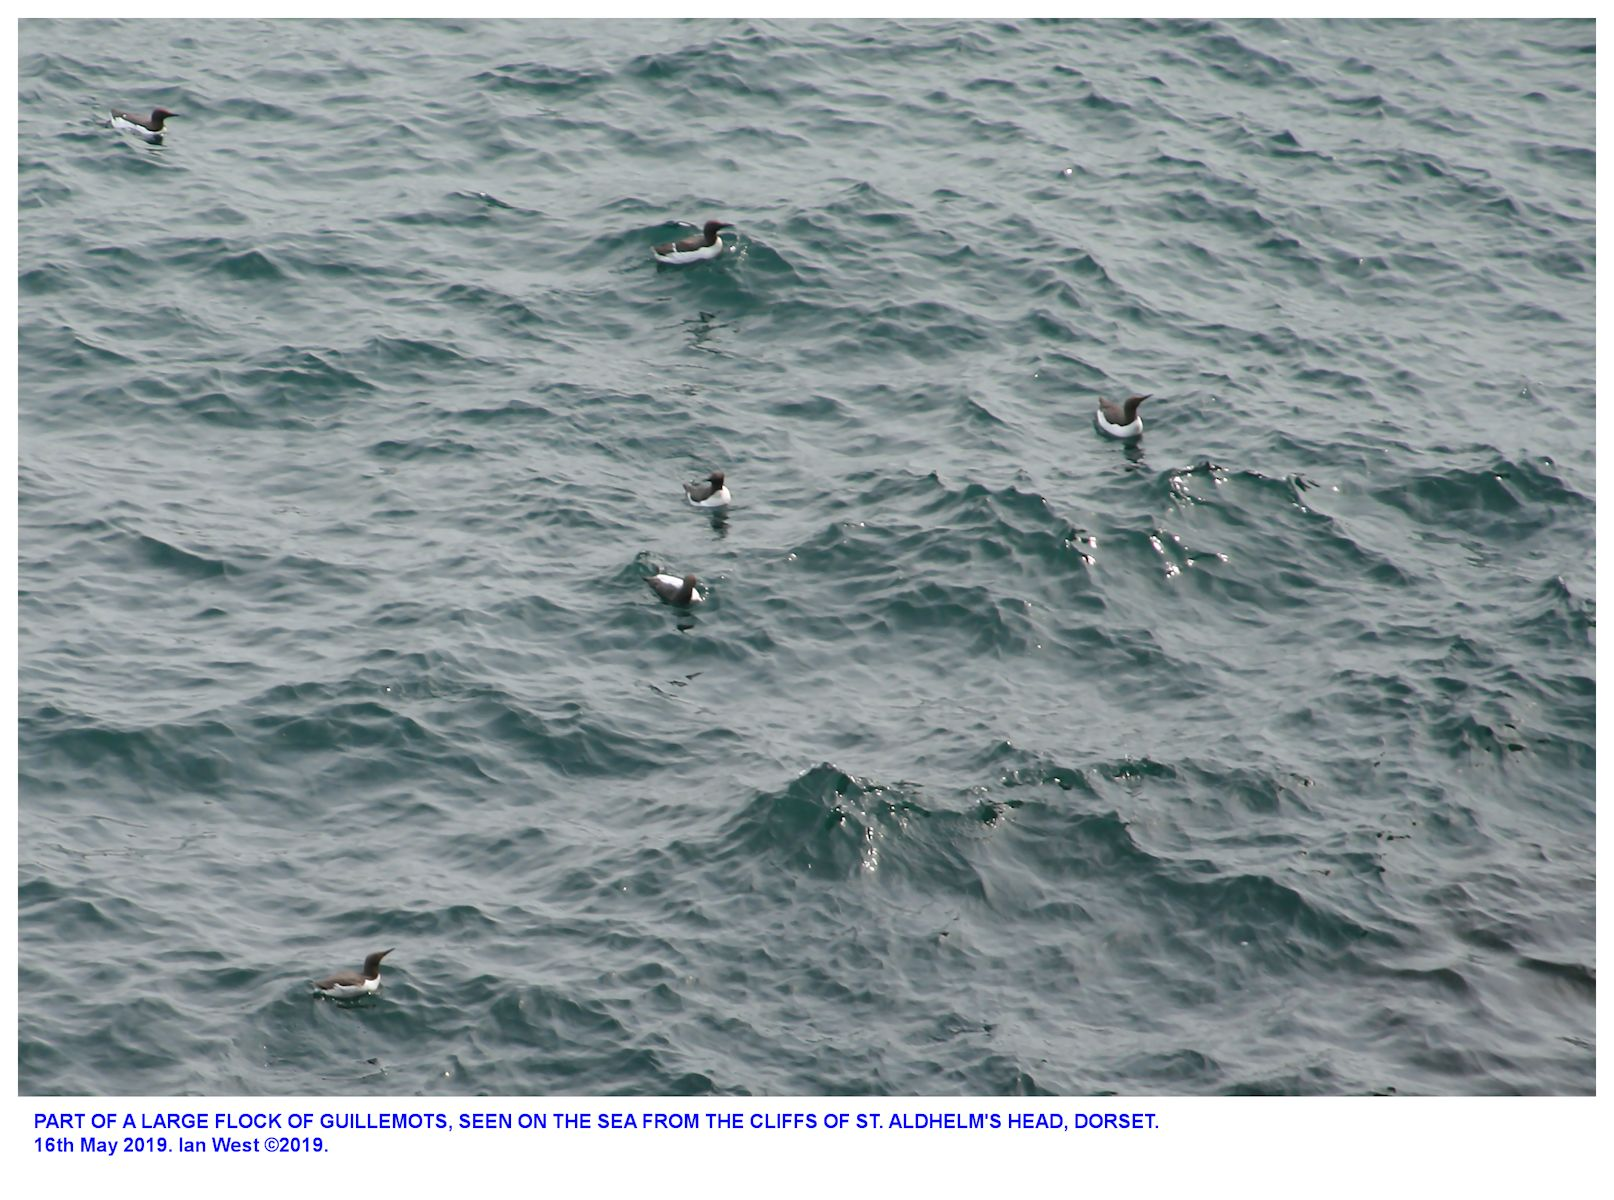 Part of large flock of guillemots adjacent to the cliffs at St. Aldhelm's Head, Dorset, 18th May 2019